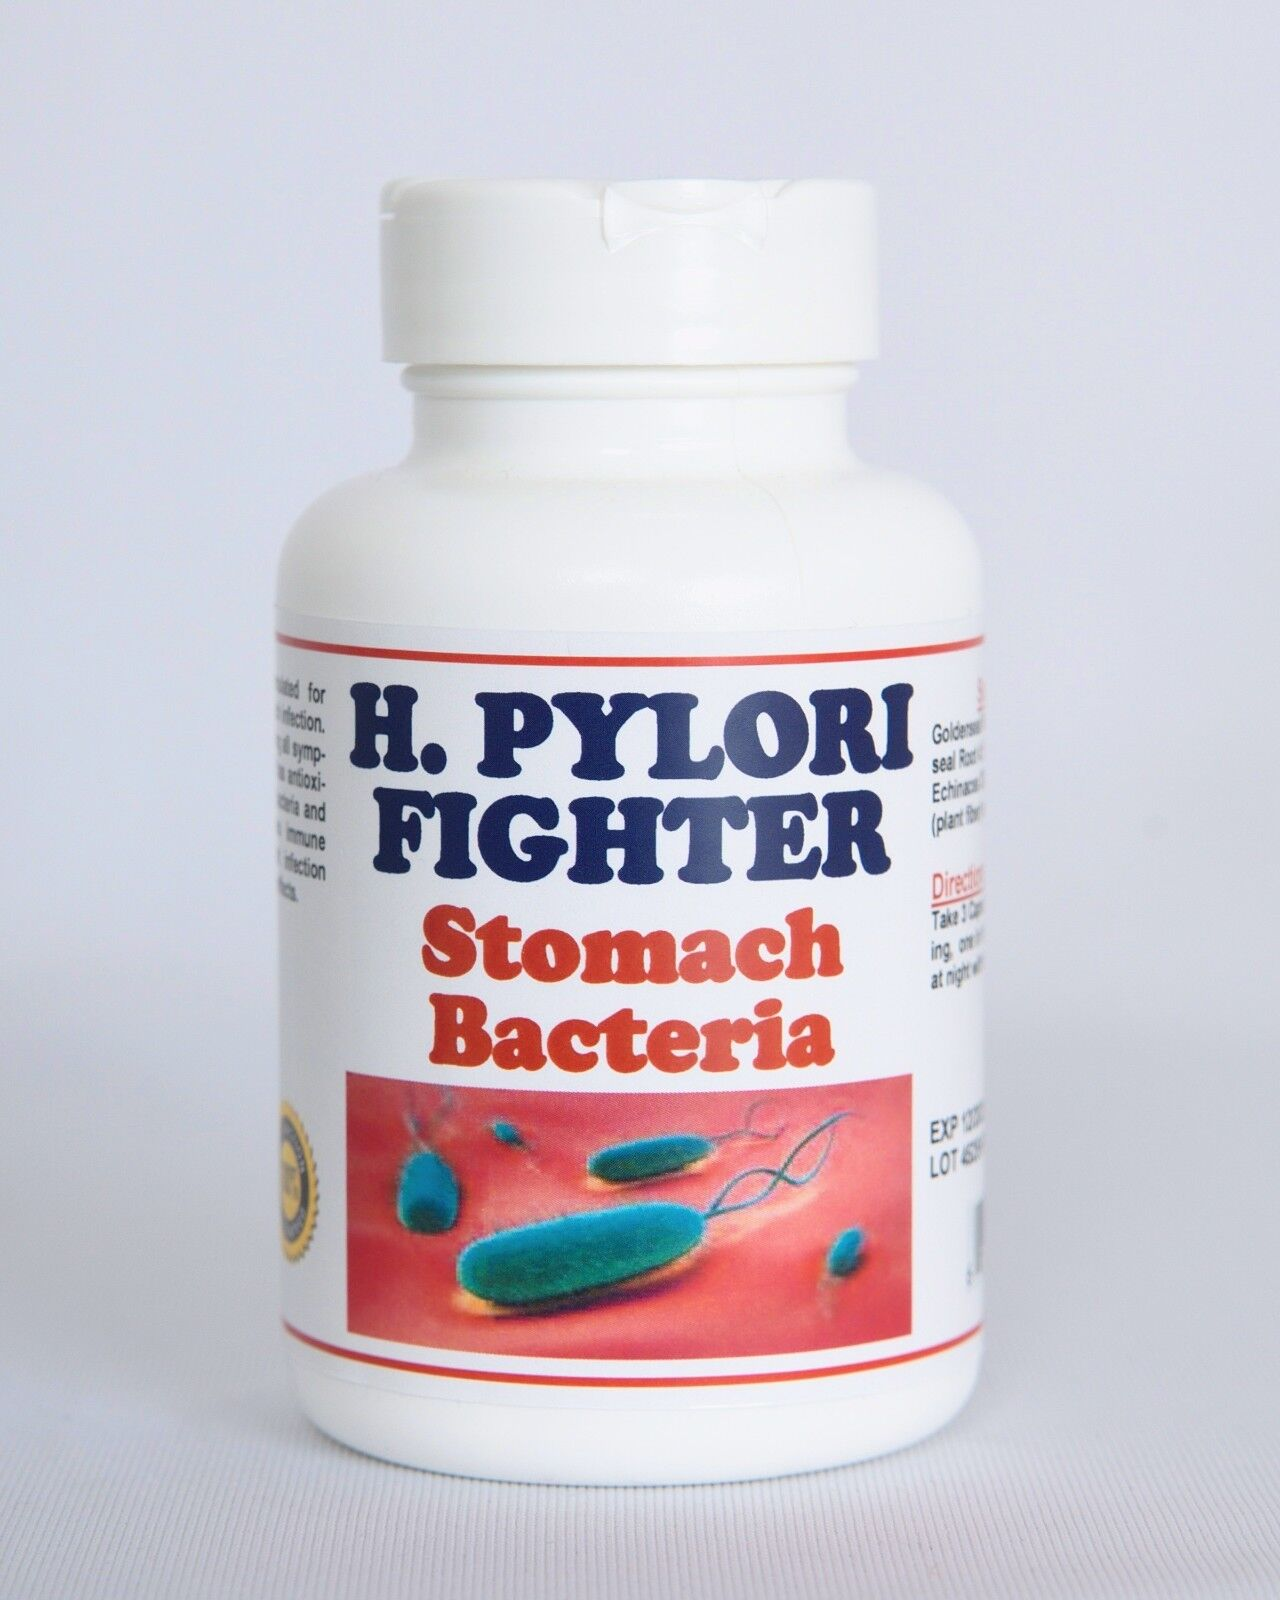 Stomach Bacteria - Kill The Bacteria Pylori - One month Supply - Made in USA